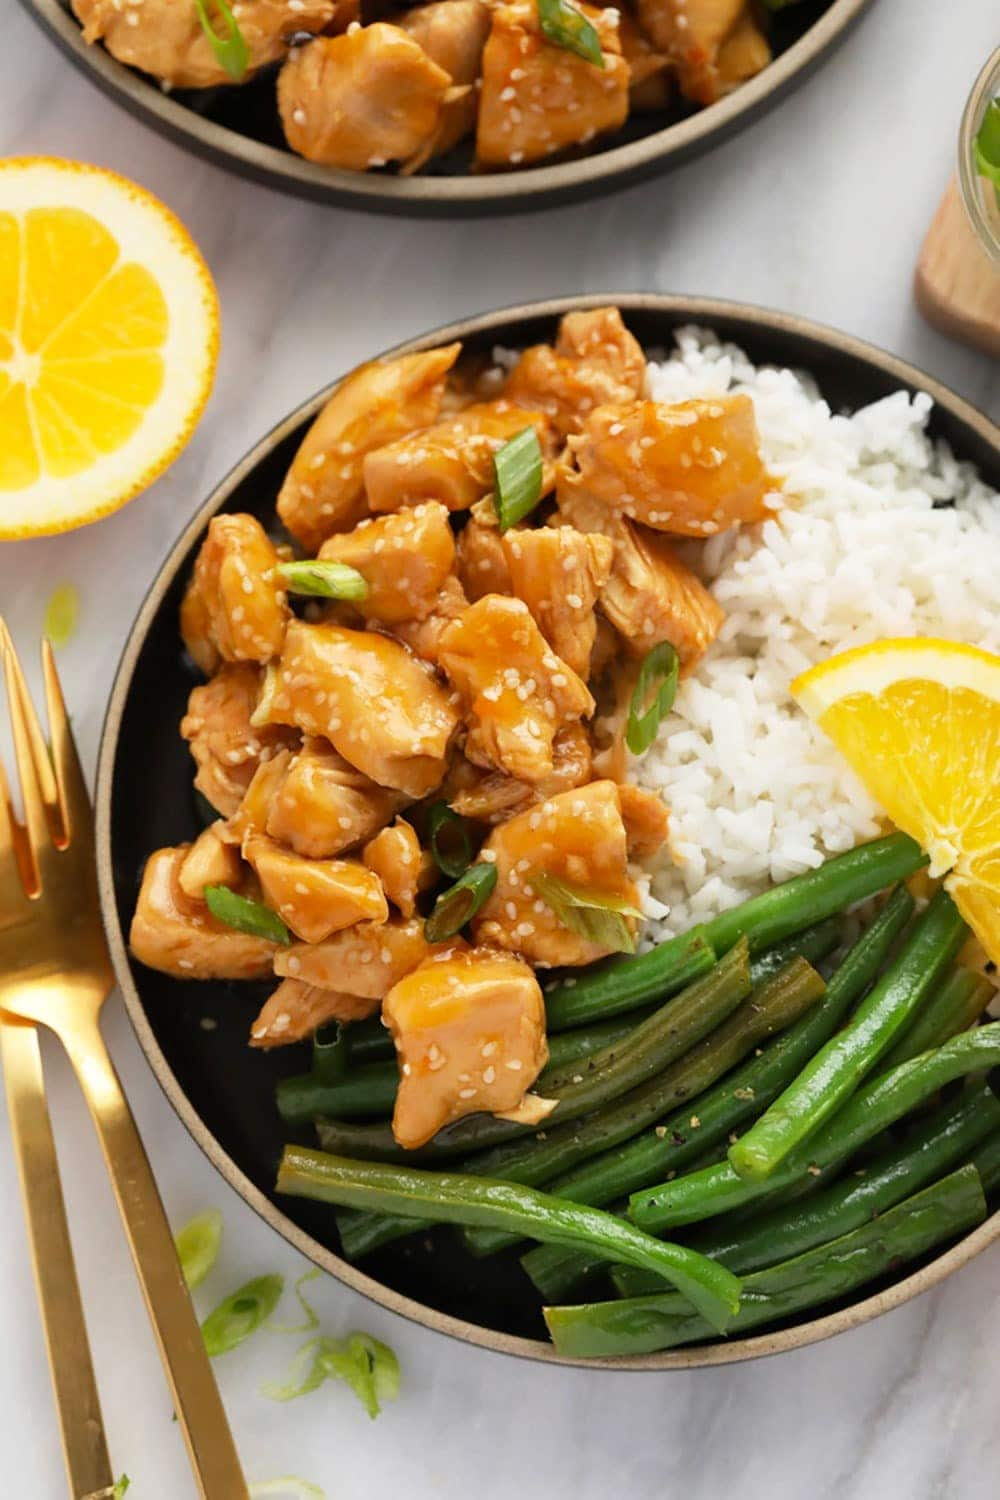 Orange chicken, white rice, and green beans on a plate